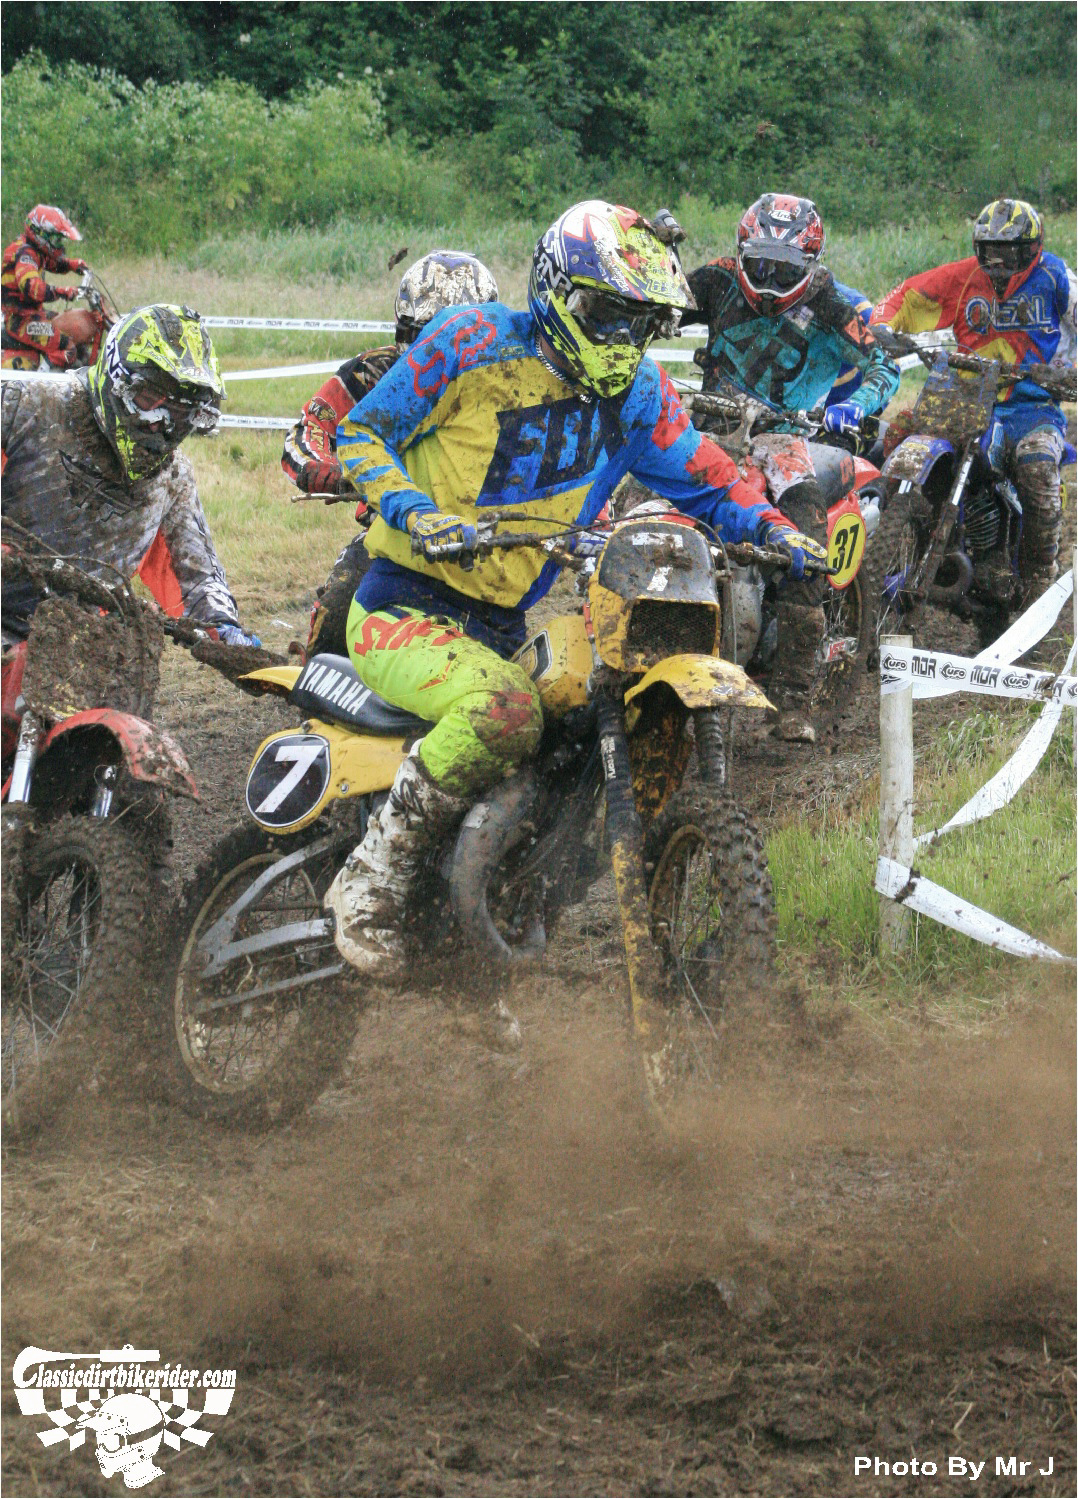 king of the castle 2015 photos Farleigh Castle twinshock motocross classicdirtbikerider.com 126